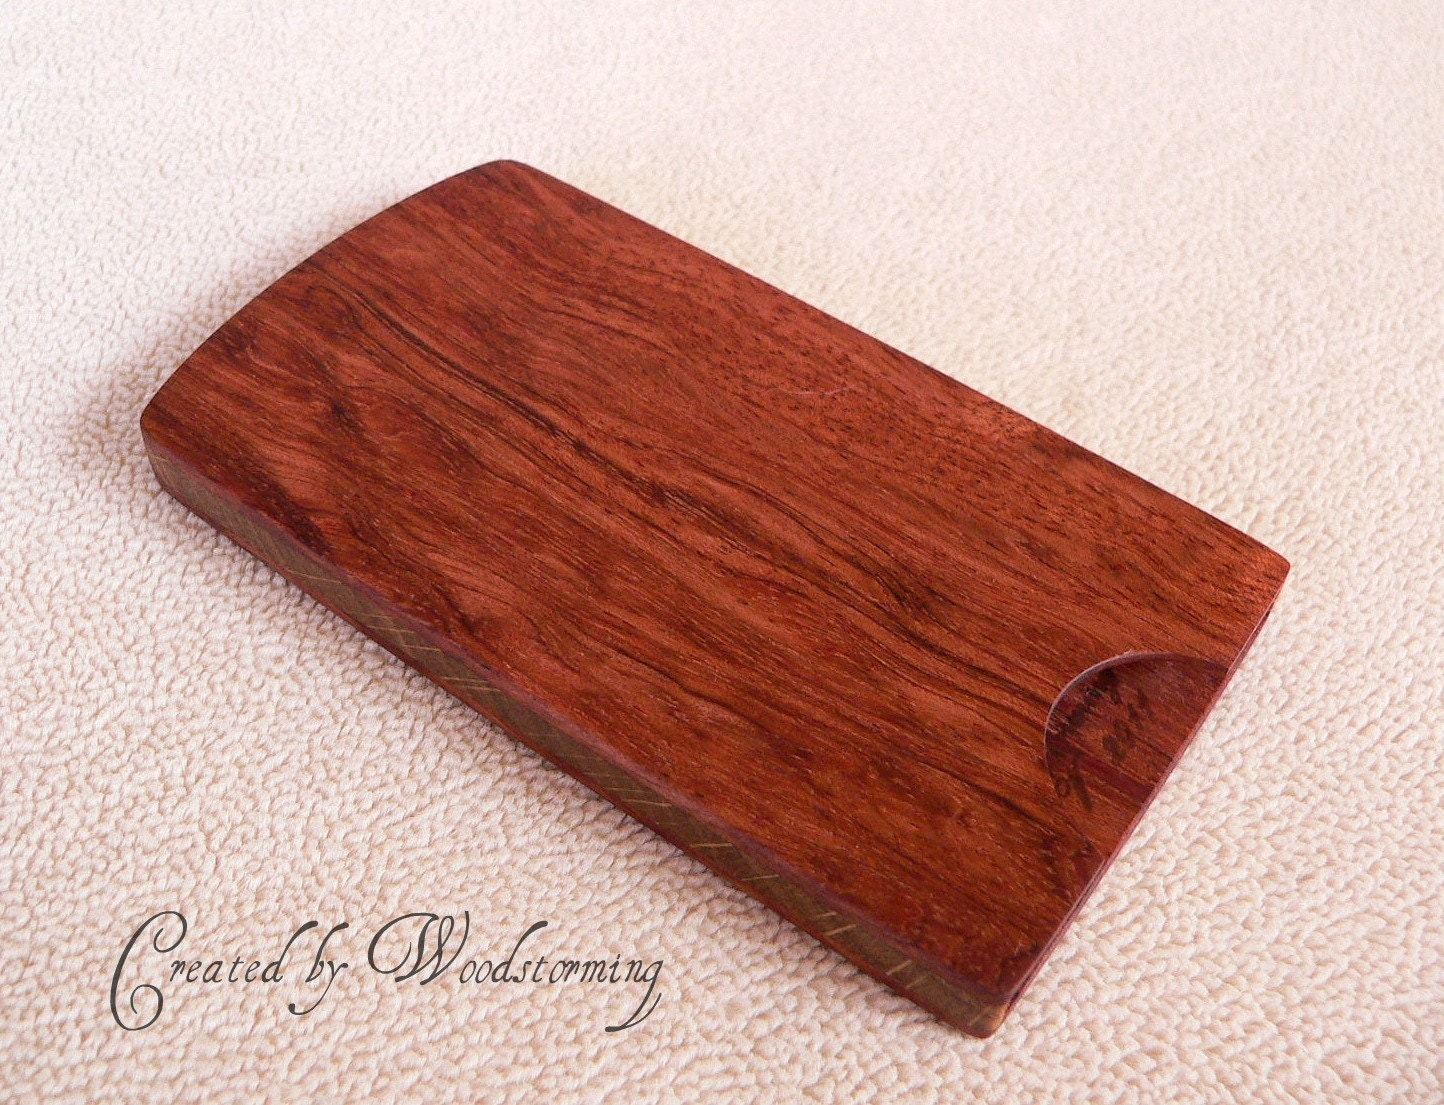 Handmade mahogany and oak business card case by Woodstorming